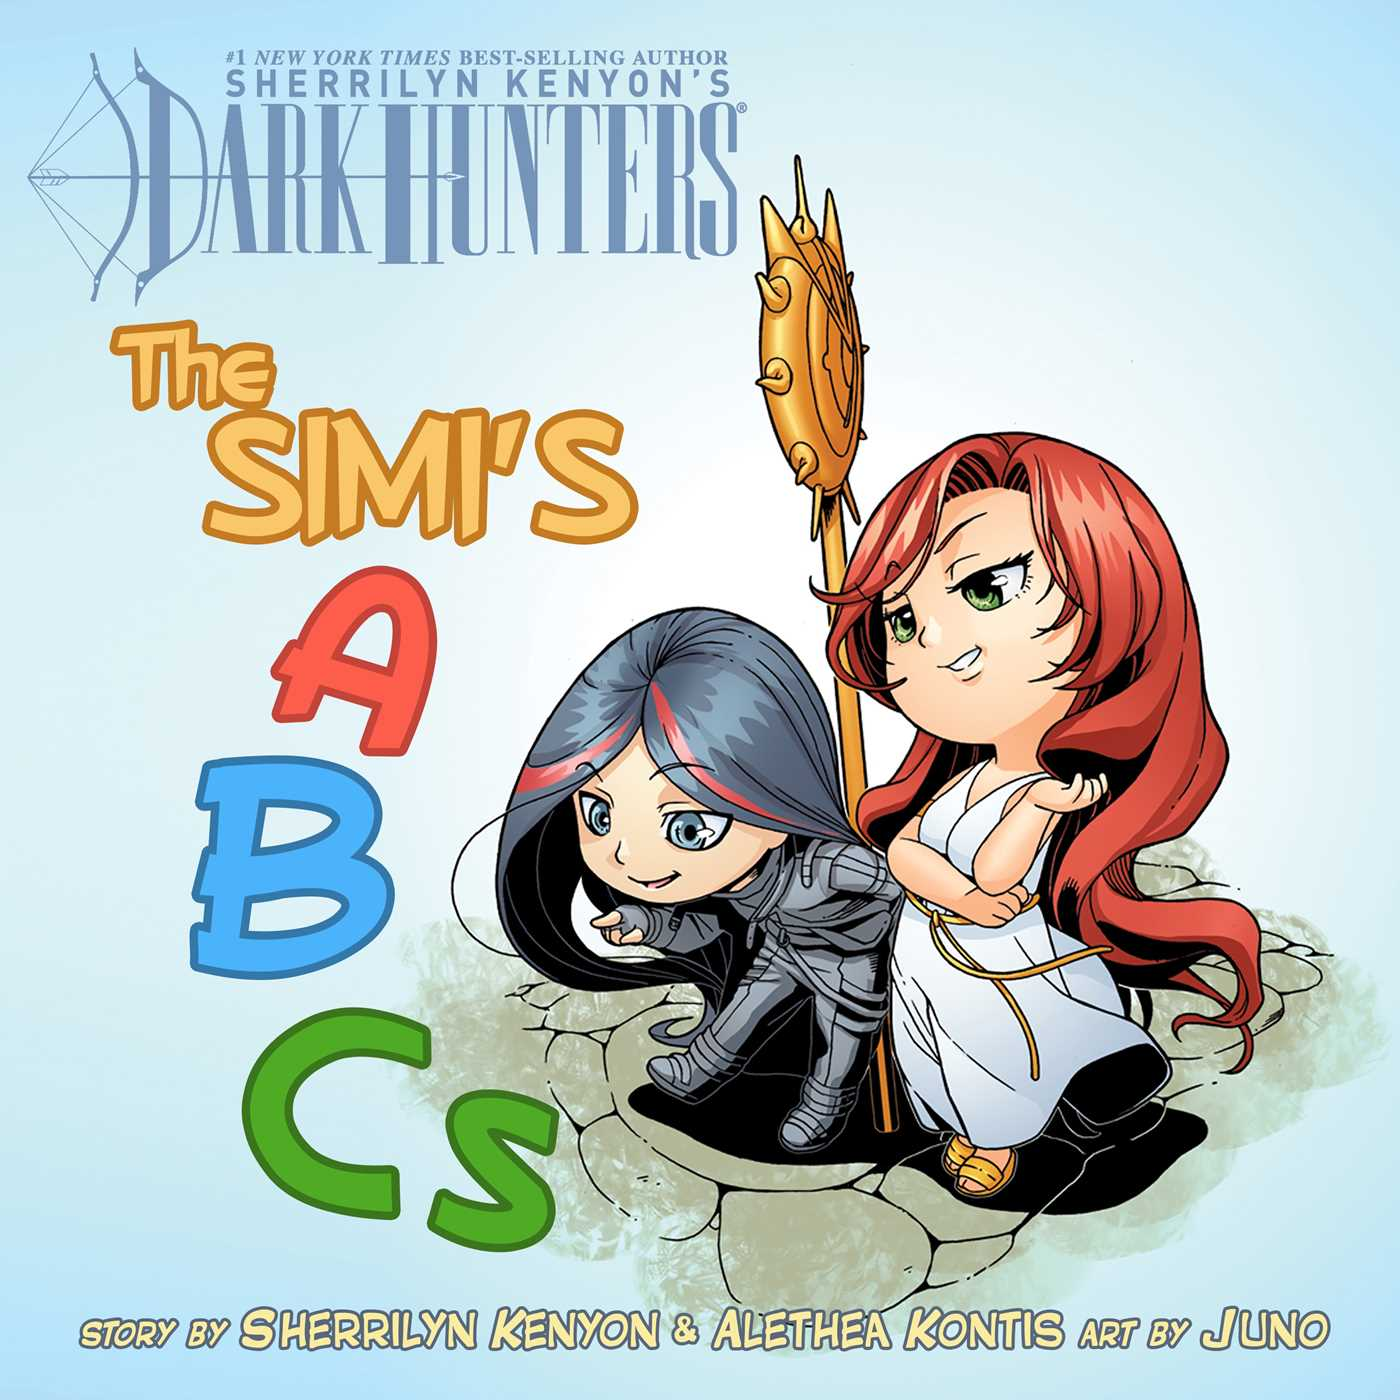 The Simi's ABCs (Hardcover)